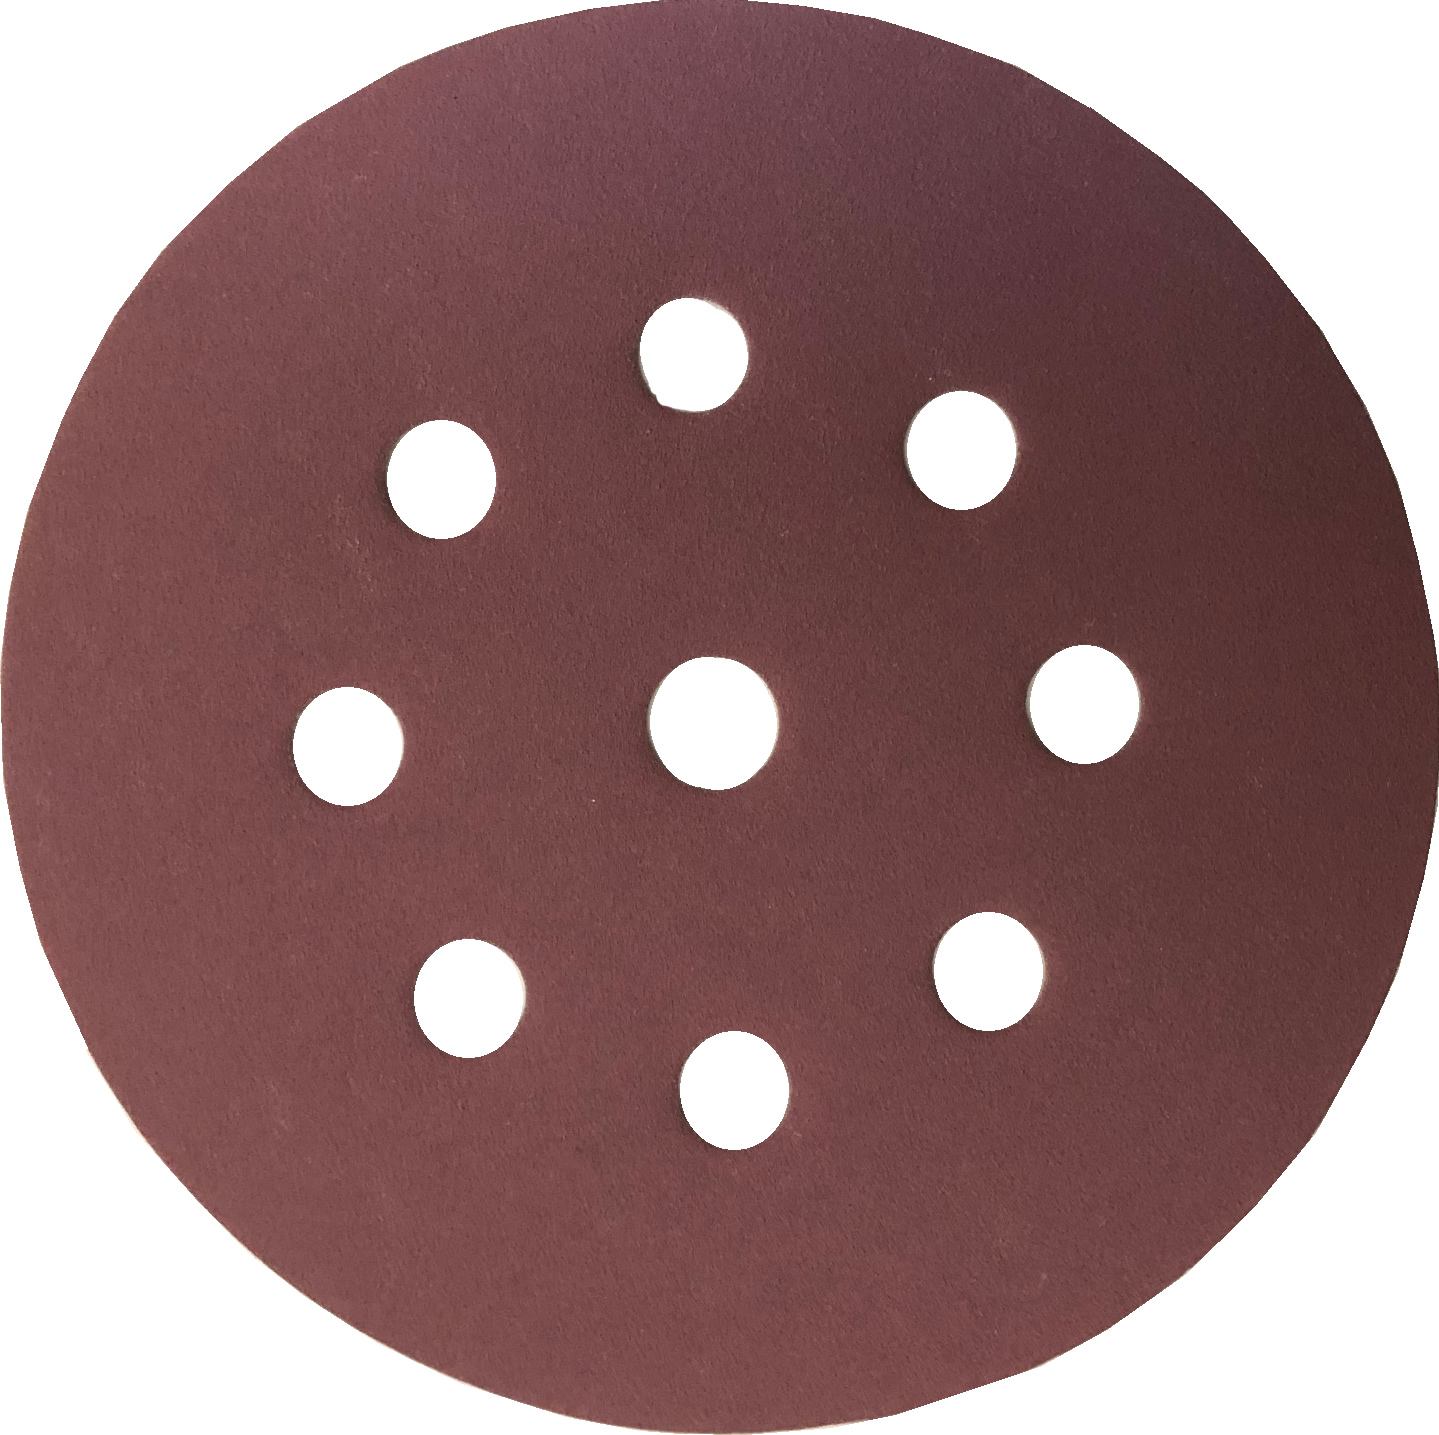 speed Hook Loop 5 Inch 9 Hole Discs Fine Grits 800 - 1500 by Sia